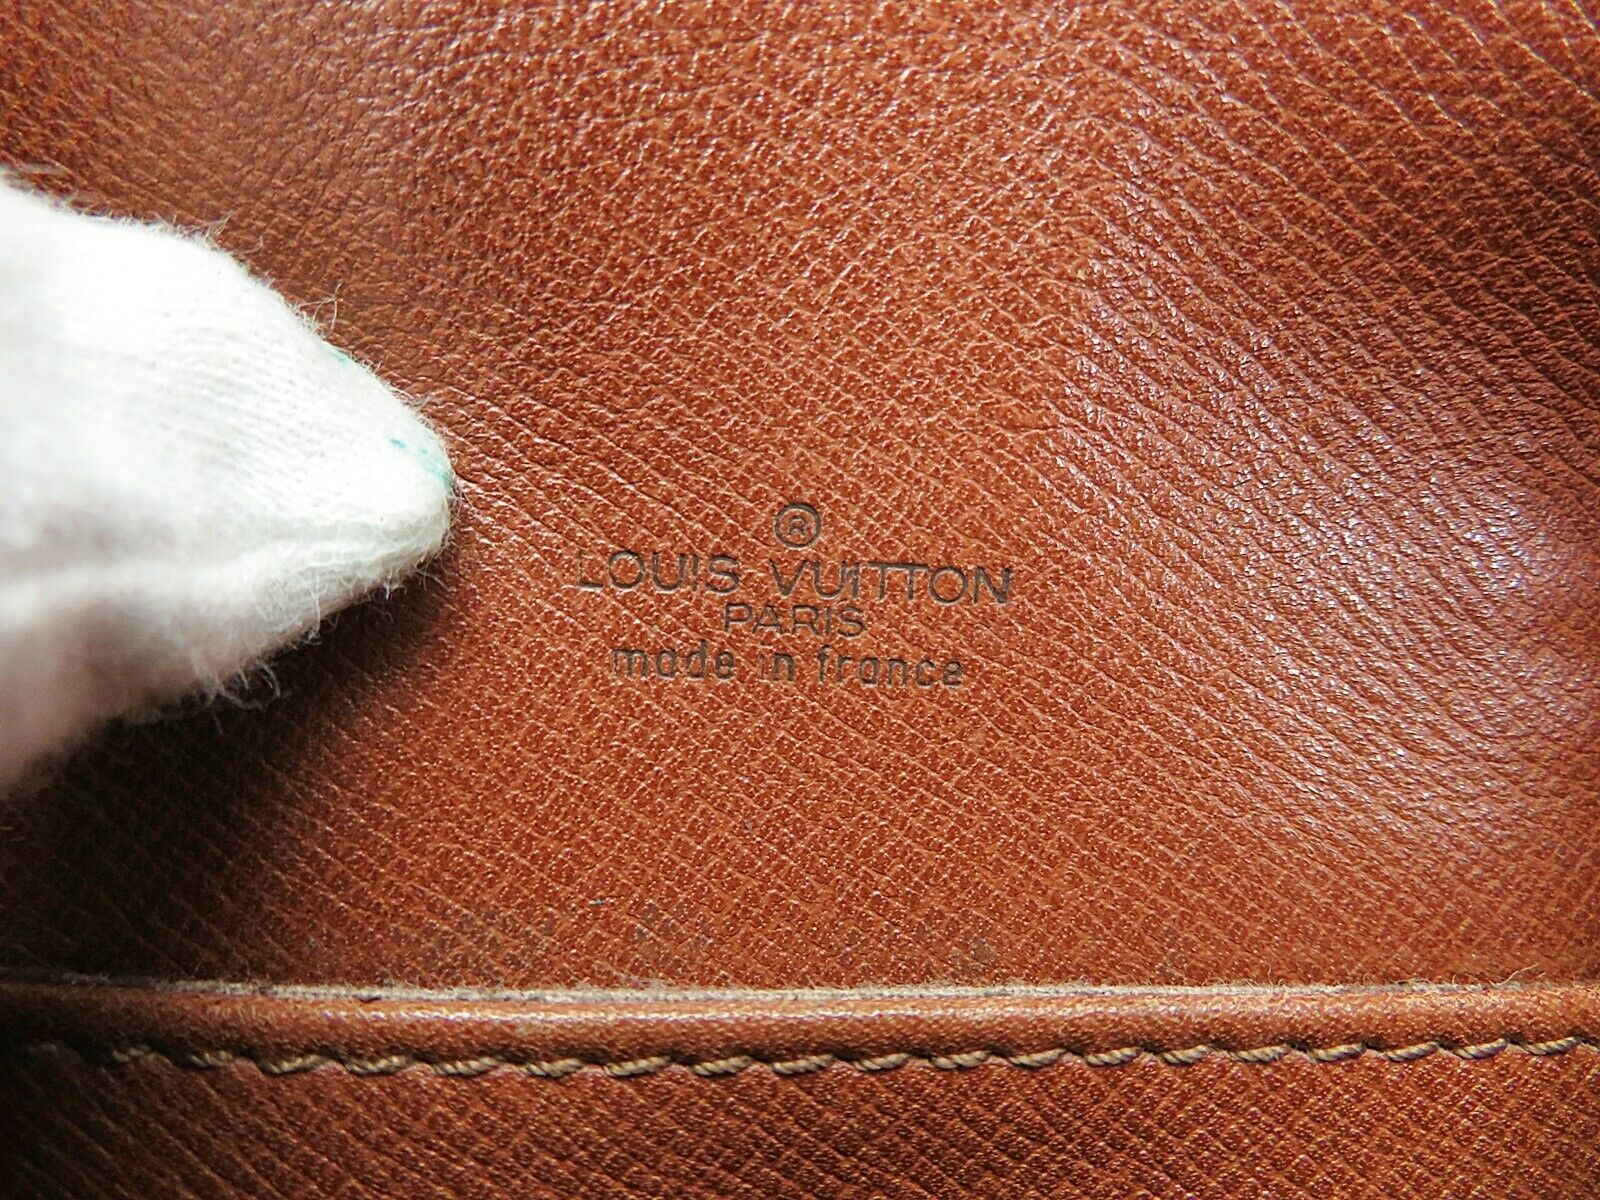 Authentic LOUIS VUITTON Saint Cloud PM Monogram Shoulder Bag #35015 image 10